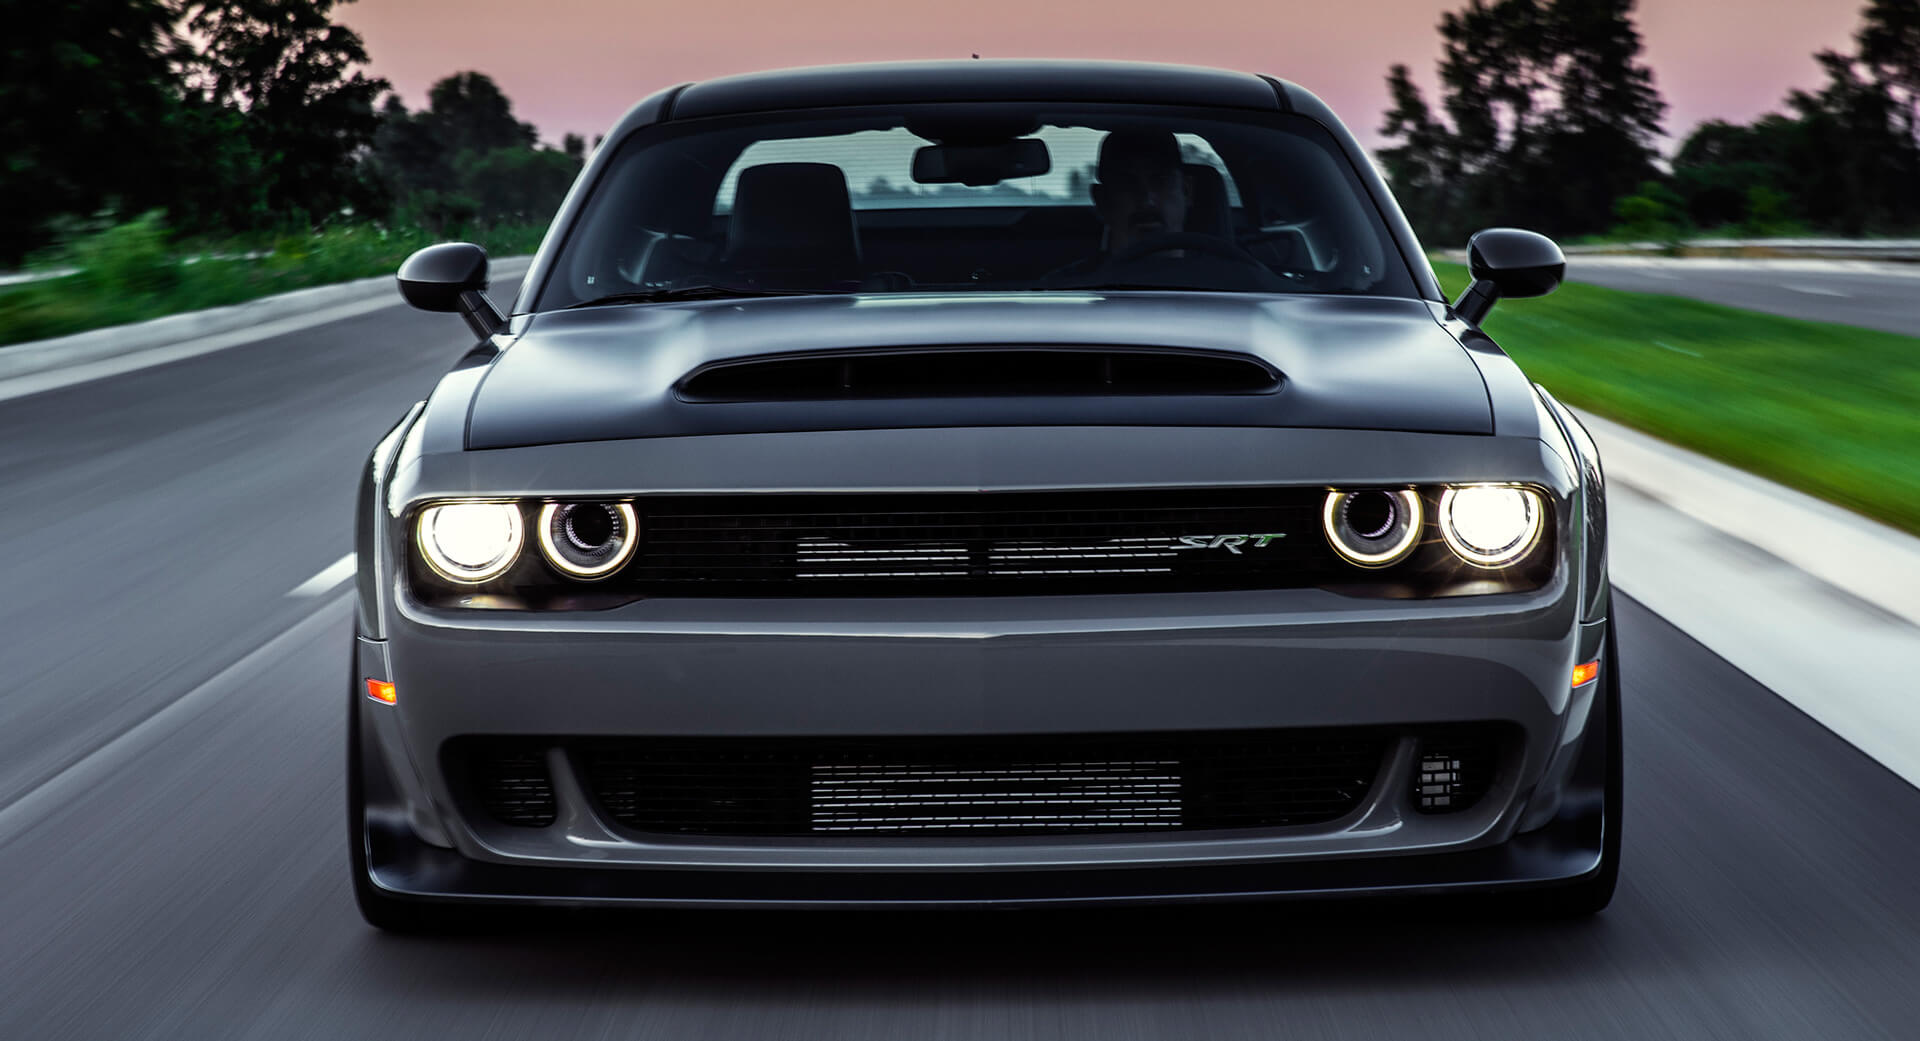 Dodge Demon Owners File Lawsuit Against Fca Over Hood Scoop Paint Issues Carscoops